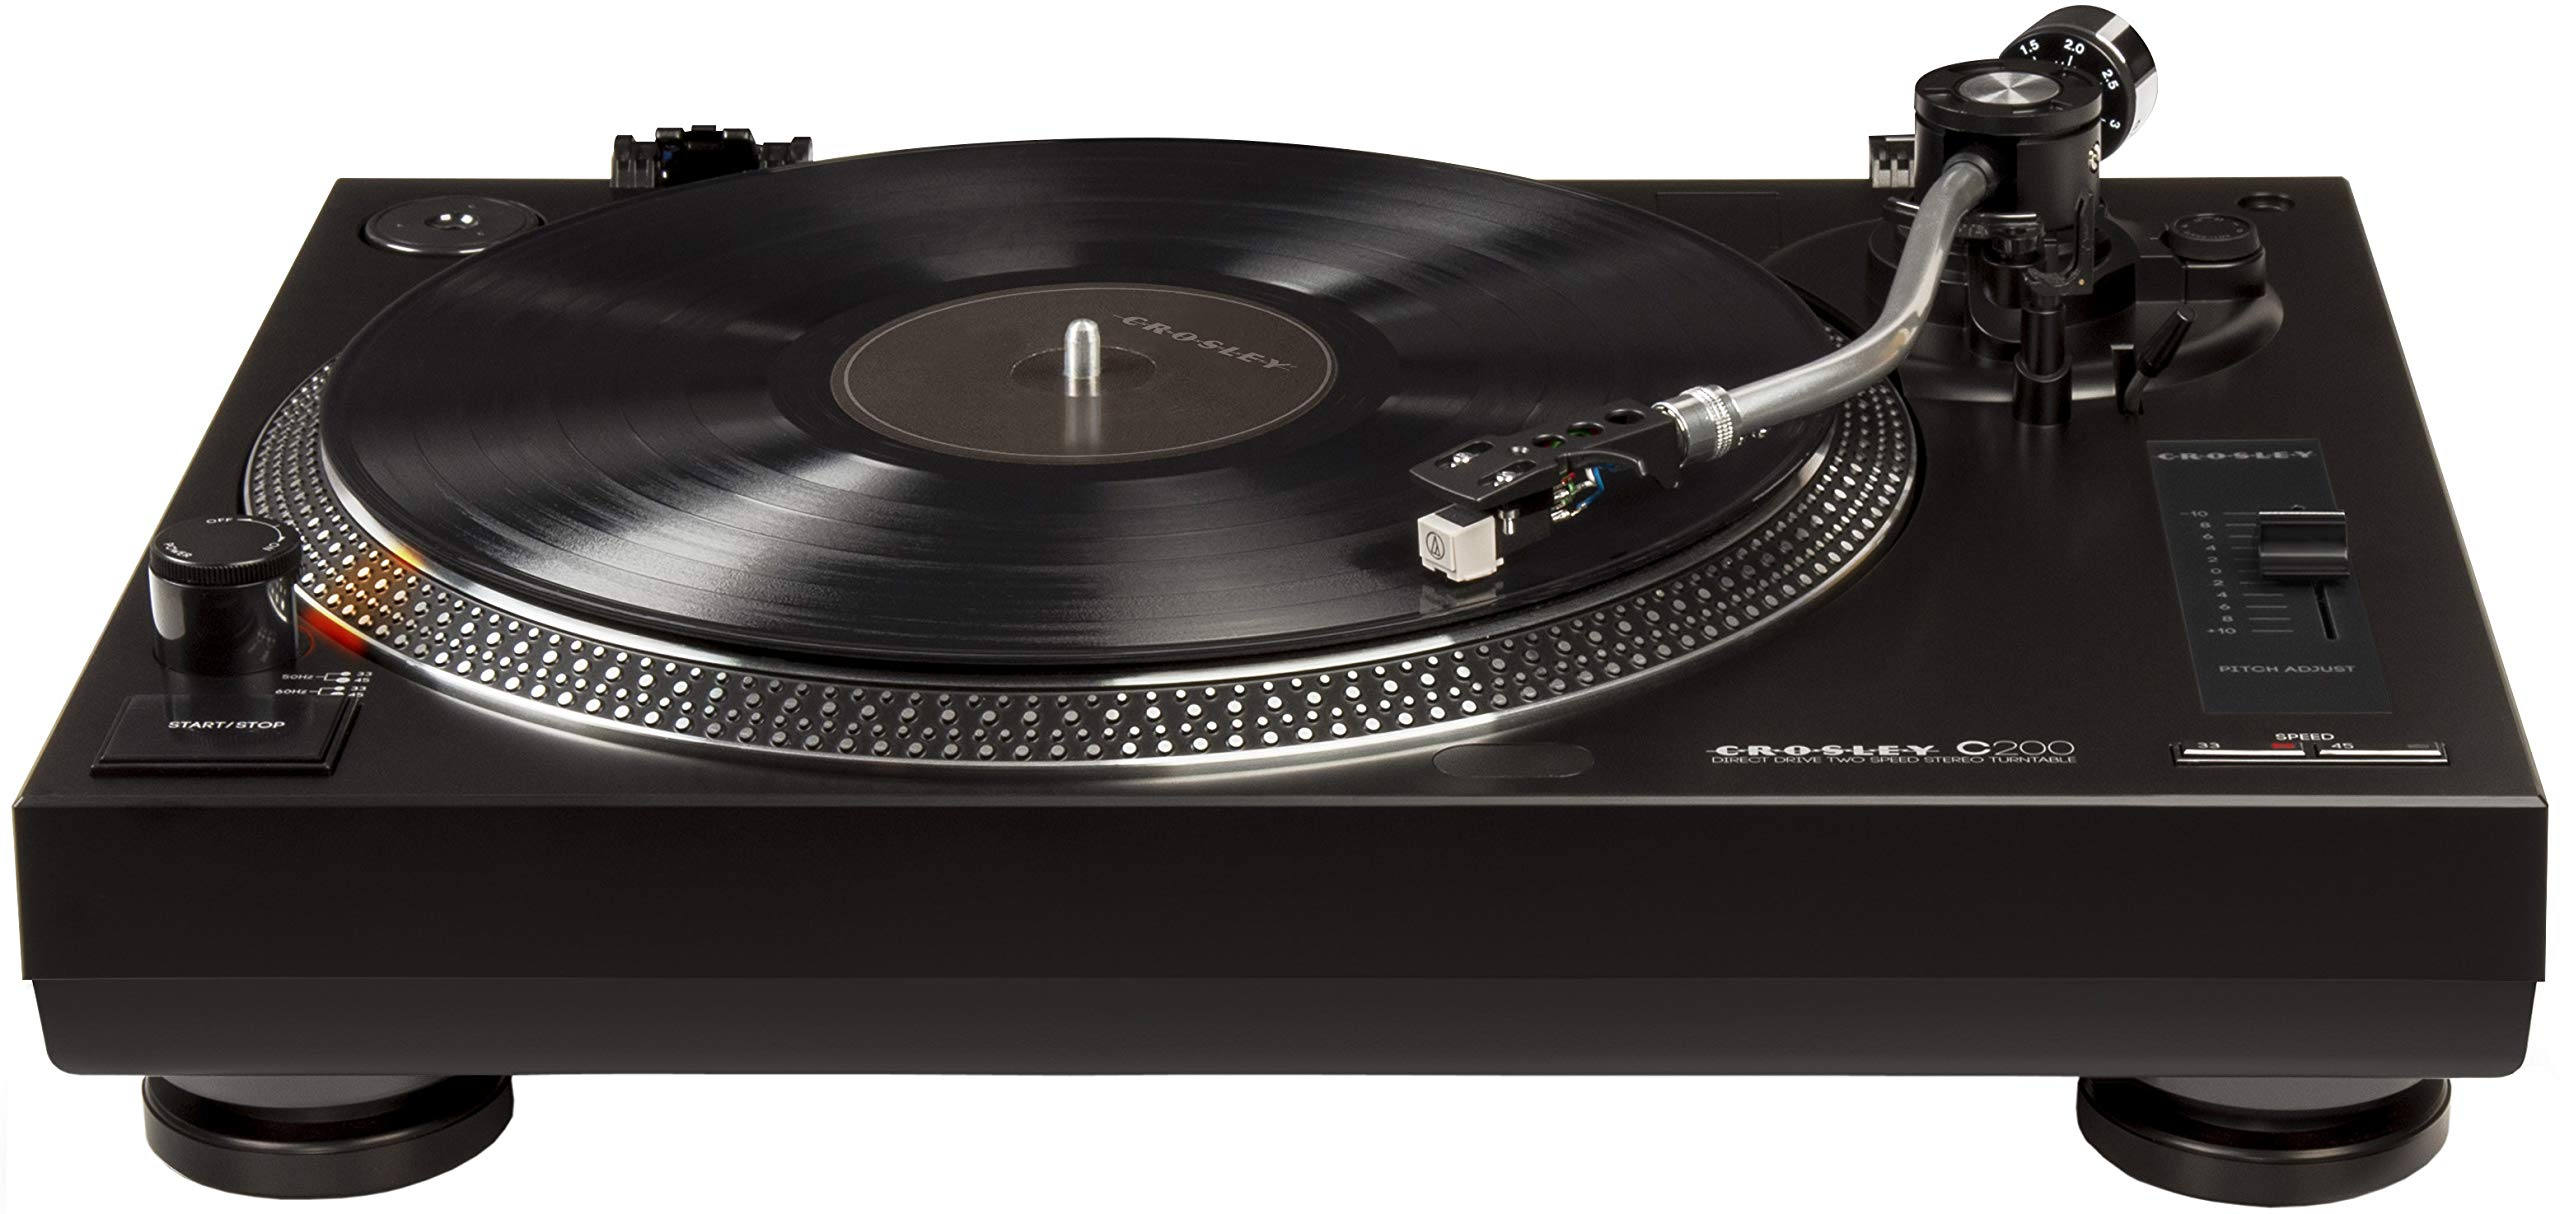 Crosley C200 Direct-Drive Turntable with S-Shaped Tone Arm, Black by Crosley